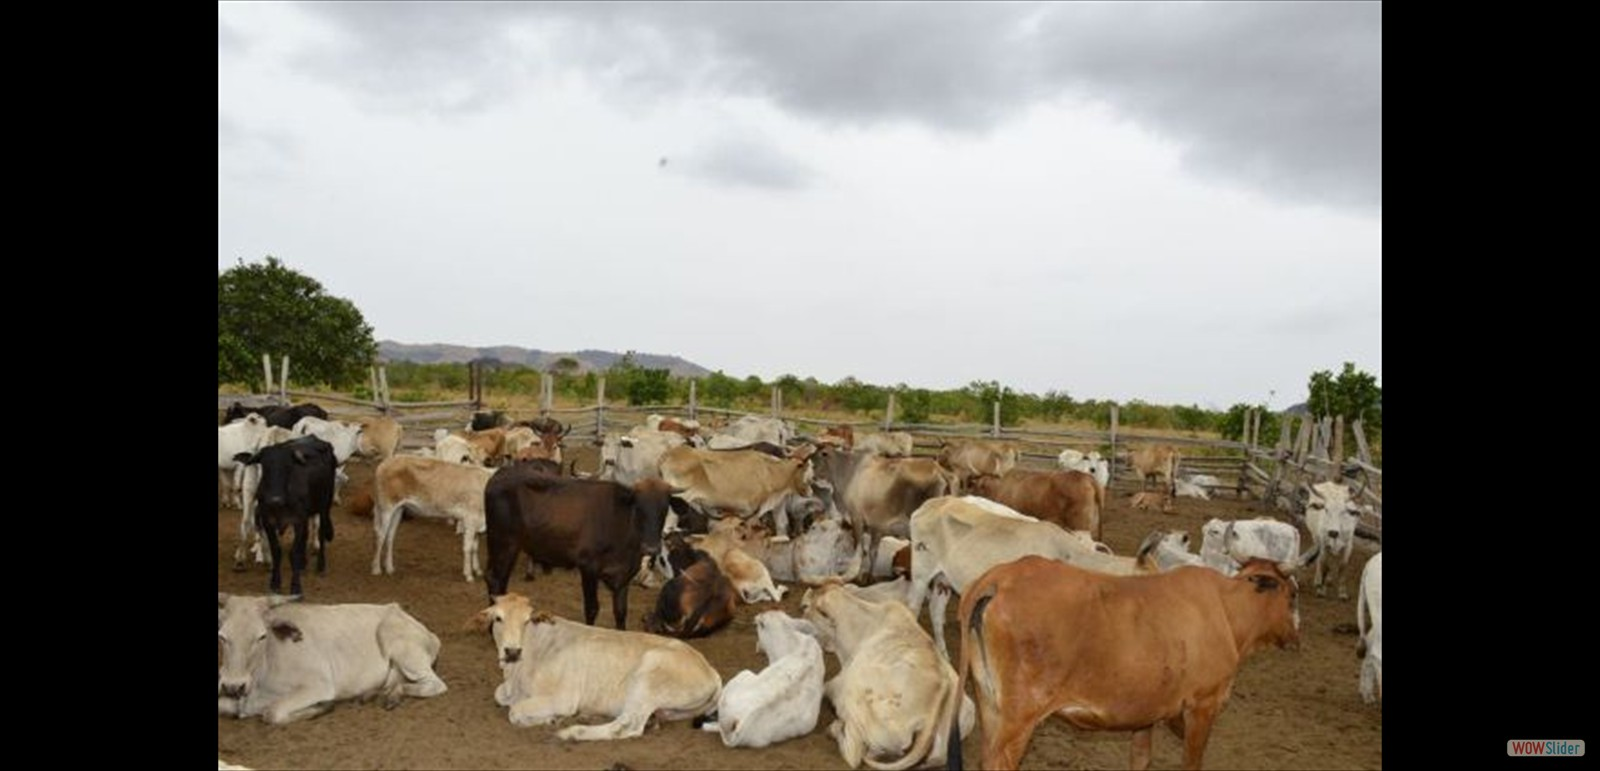 Cattle ranching at Meriwau, Region Nine